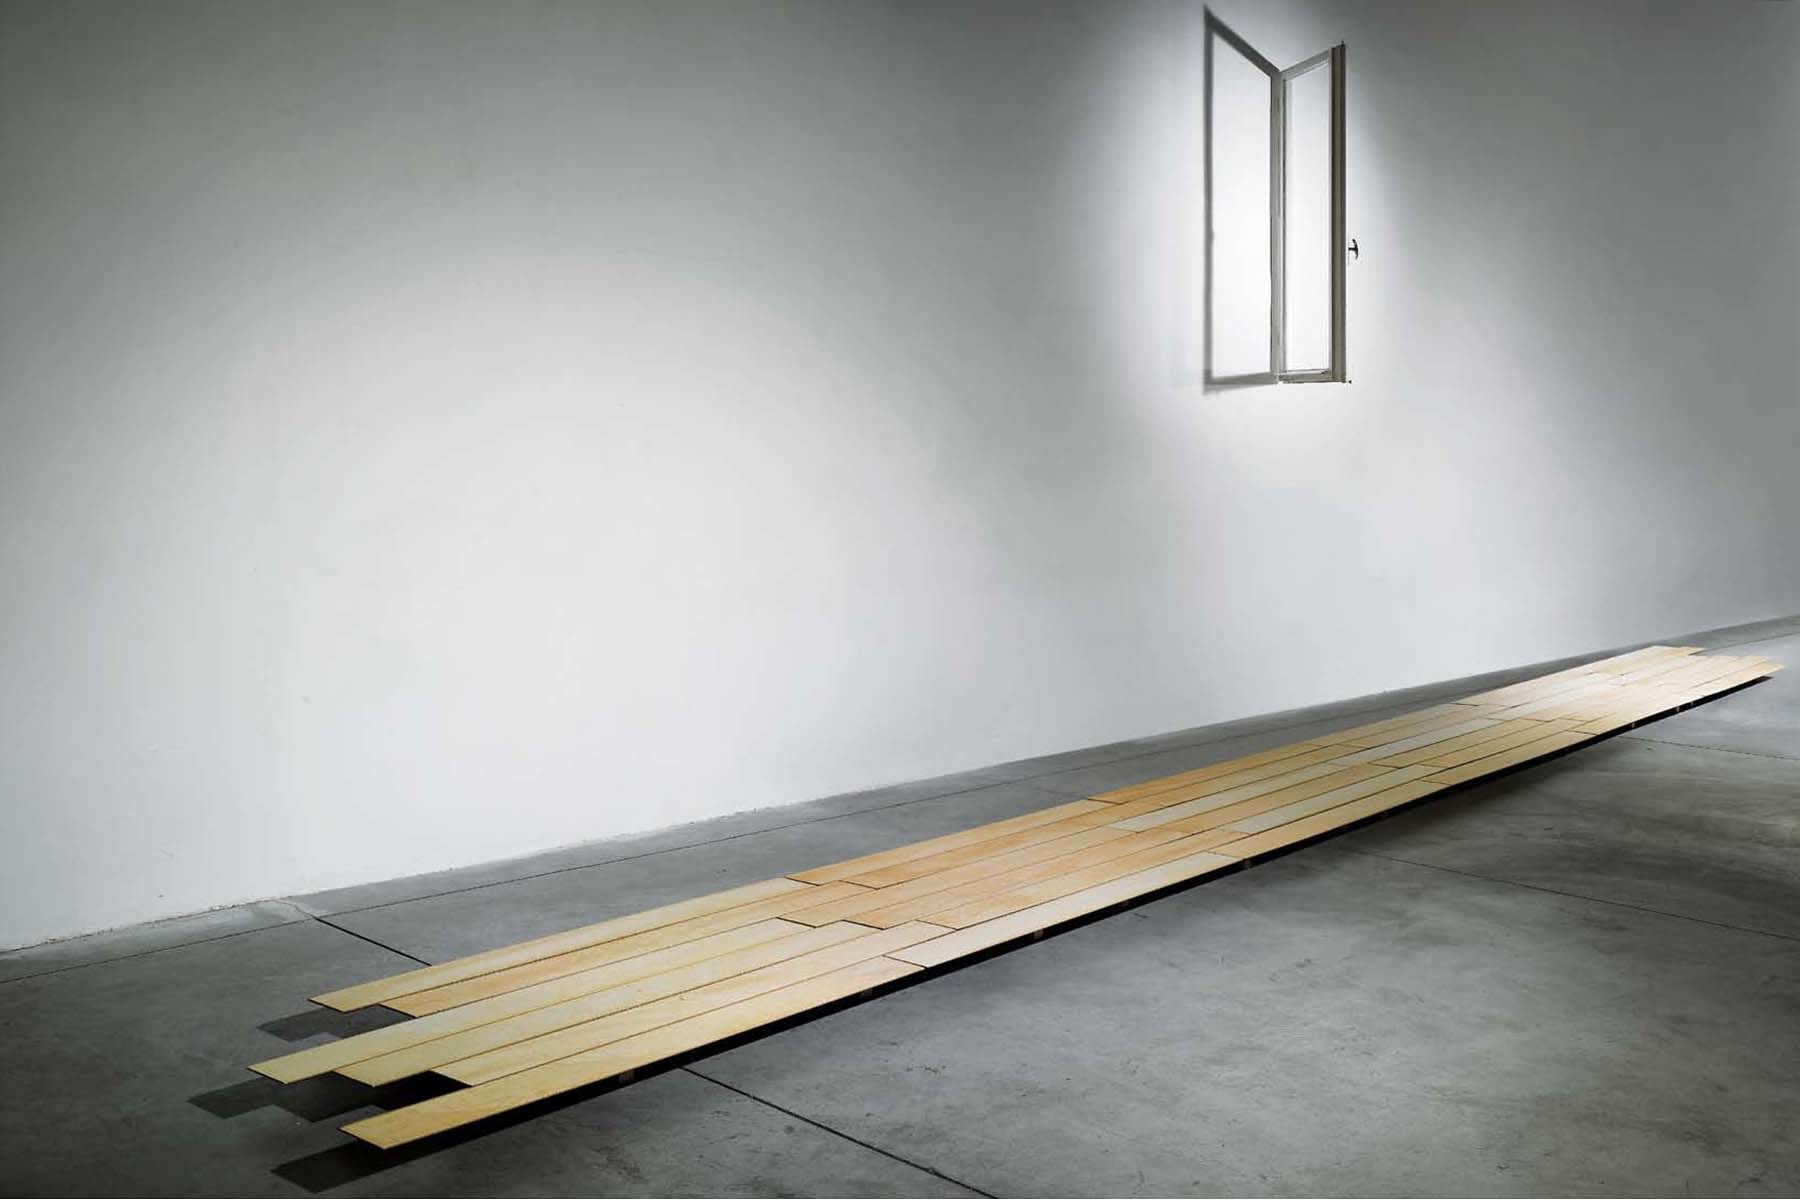 Jacopo Mazzonelli, (I play) lonely everyday, 2010, wood floor, window, sound system, viariable dimensions